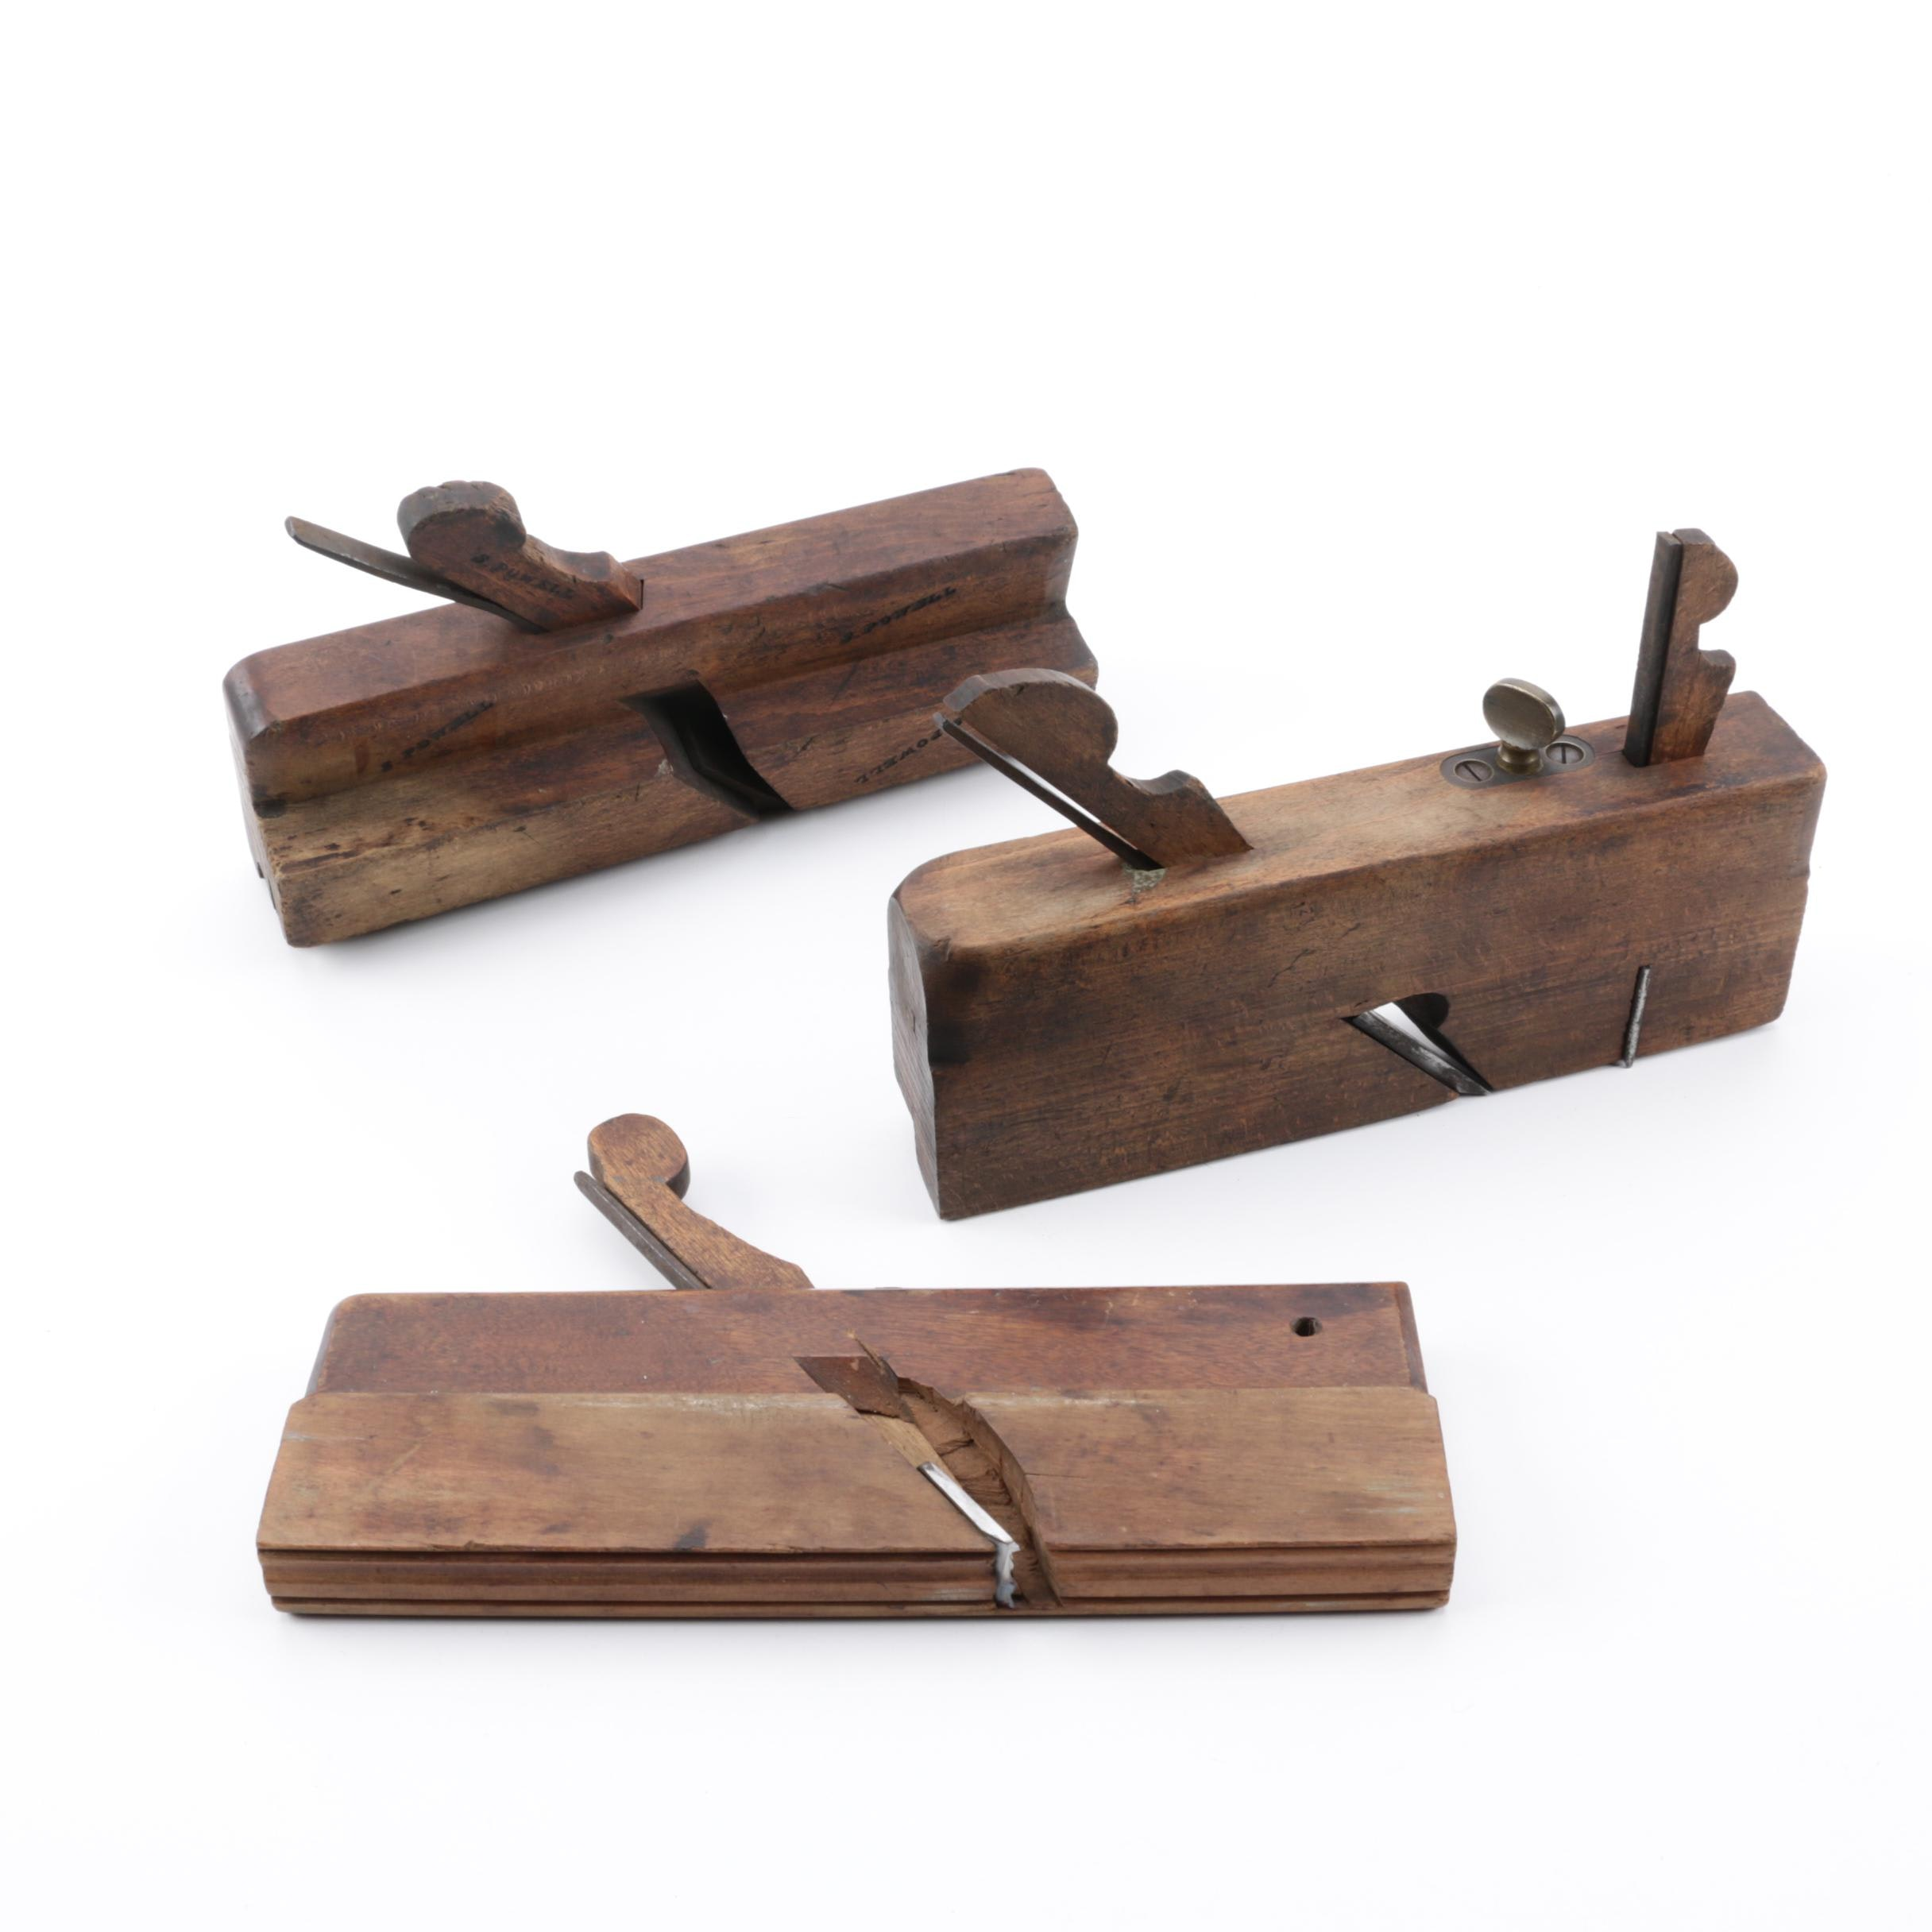 Antique American Jo Fuller, Ohio Tool, and S. Powell Molding Hand Planes